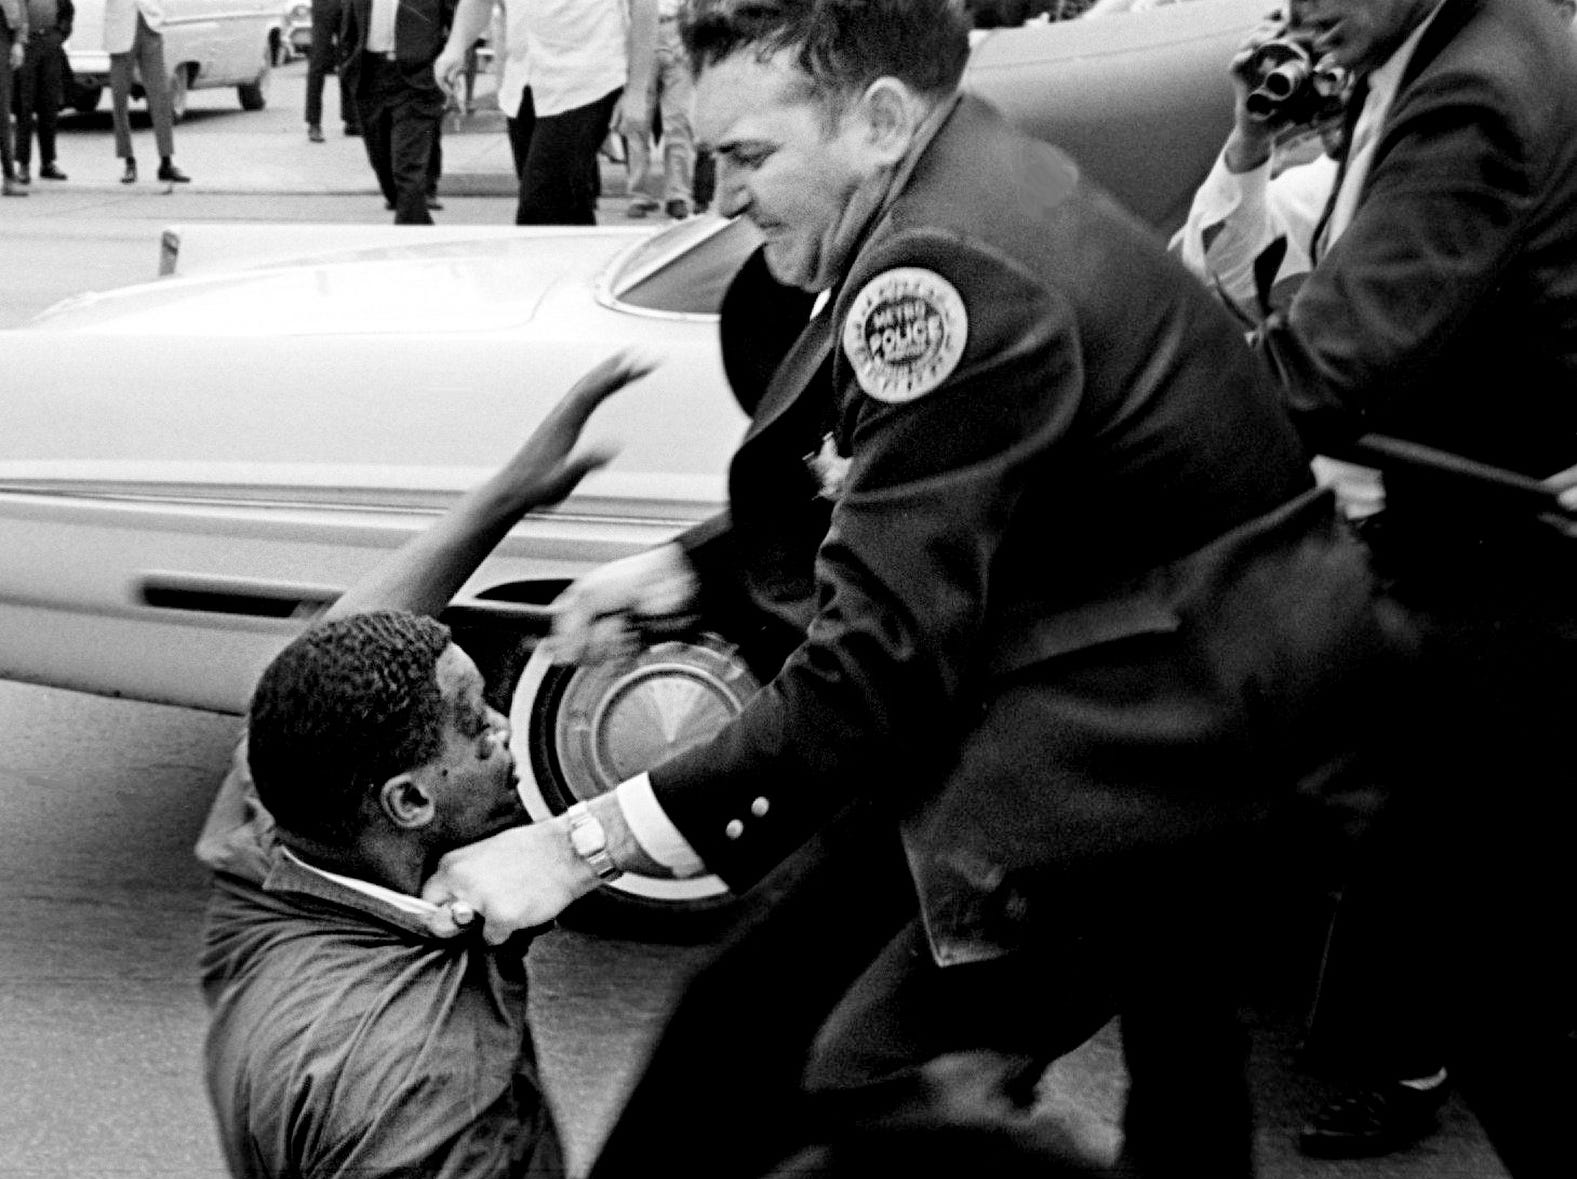 Metro patrolman J. W. Vanatta wrestles civil rights demonstrator Lester McKinnie down to the ground on West End Avenue in front of Morrison's Cafeteria on April 27, 1964.